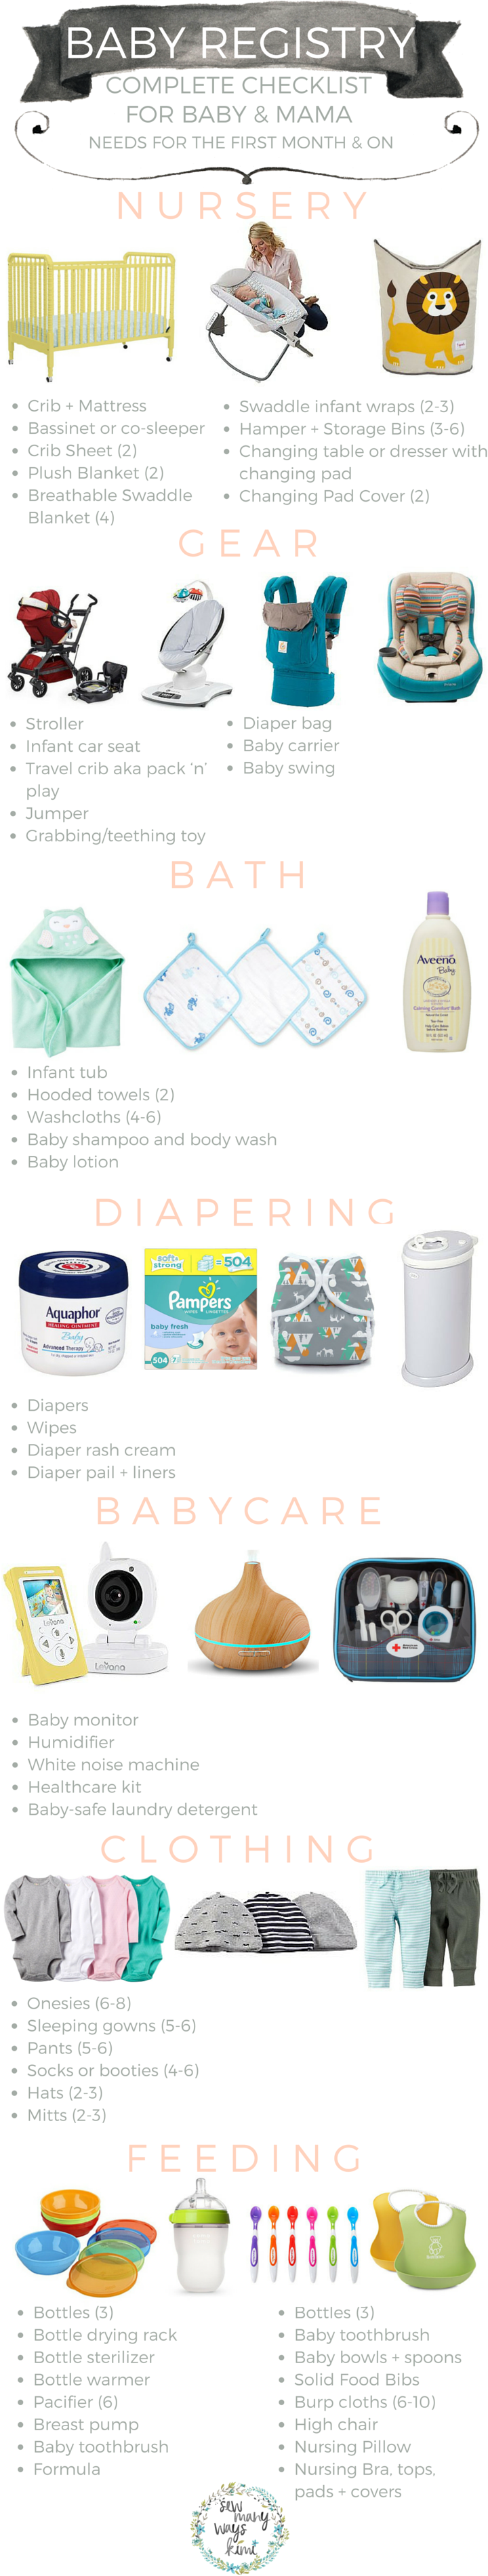 Baby Registry Checklist For The First Month And Beyond  Pregnancy